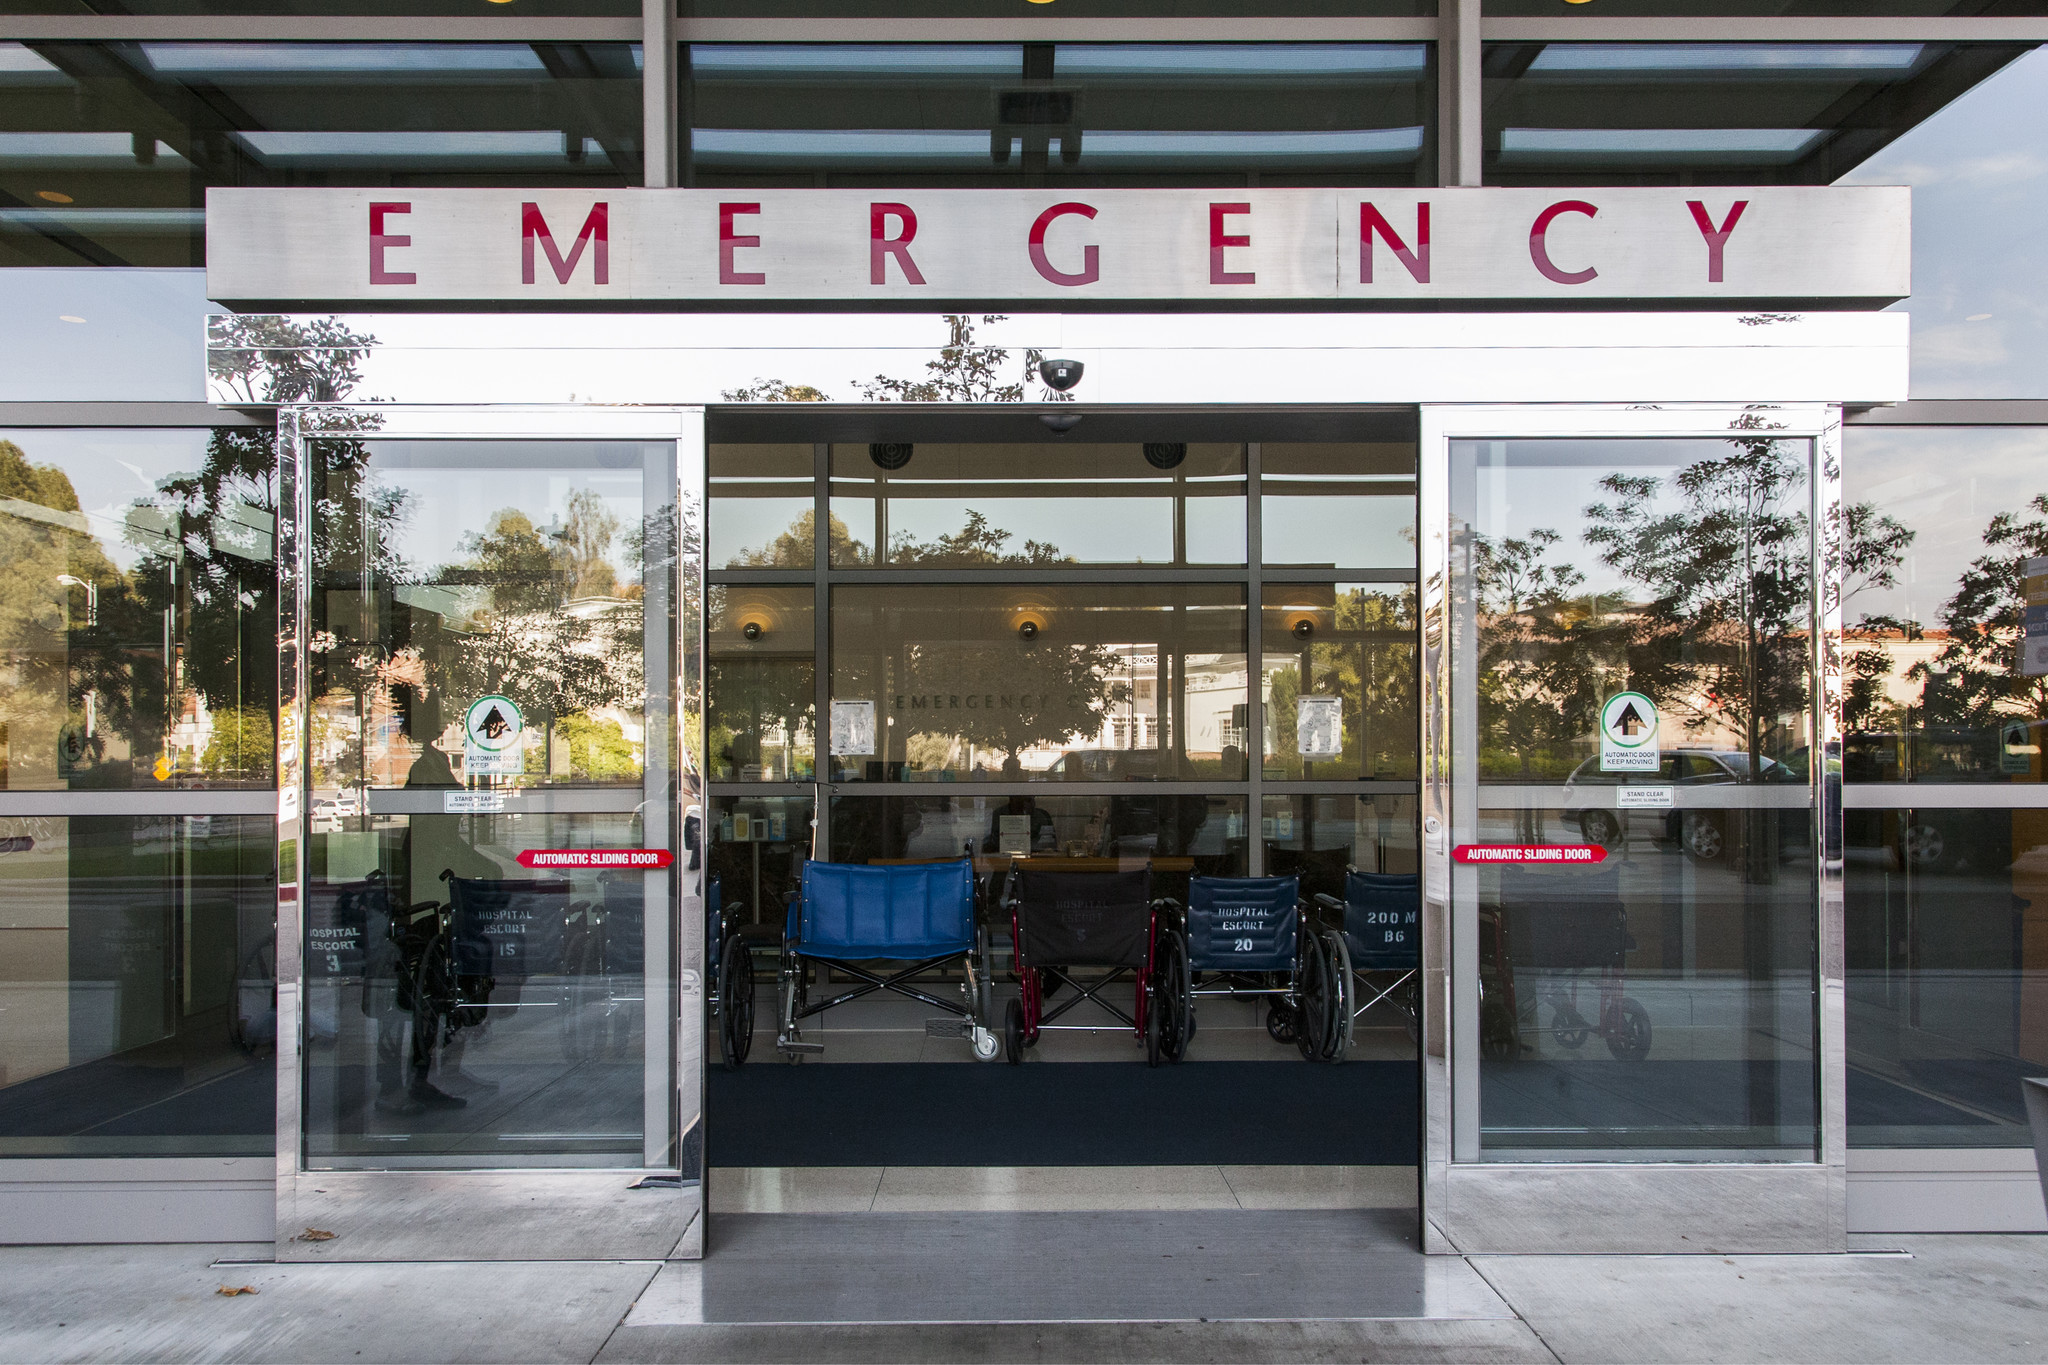 Discharged, dismissed: ERs often miss chance to set overdose survivors on 'better path'